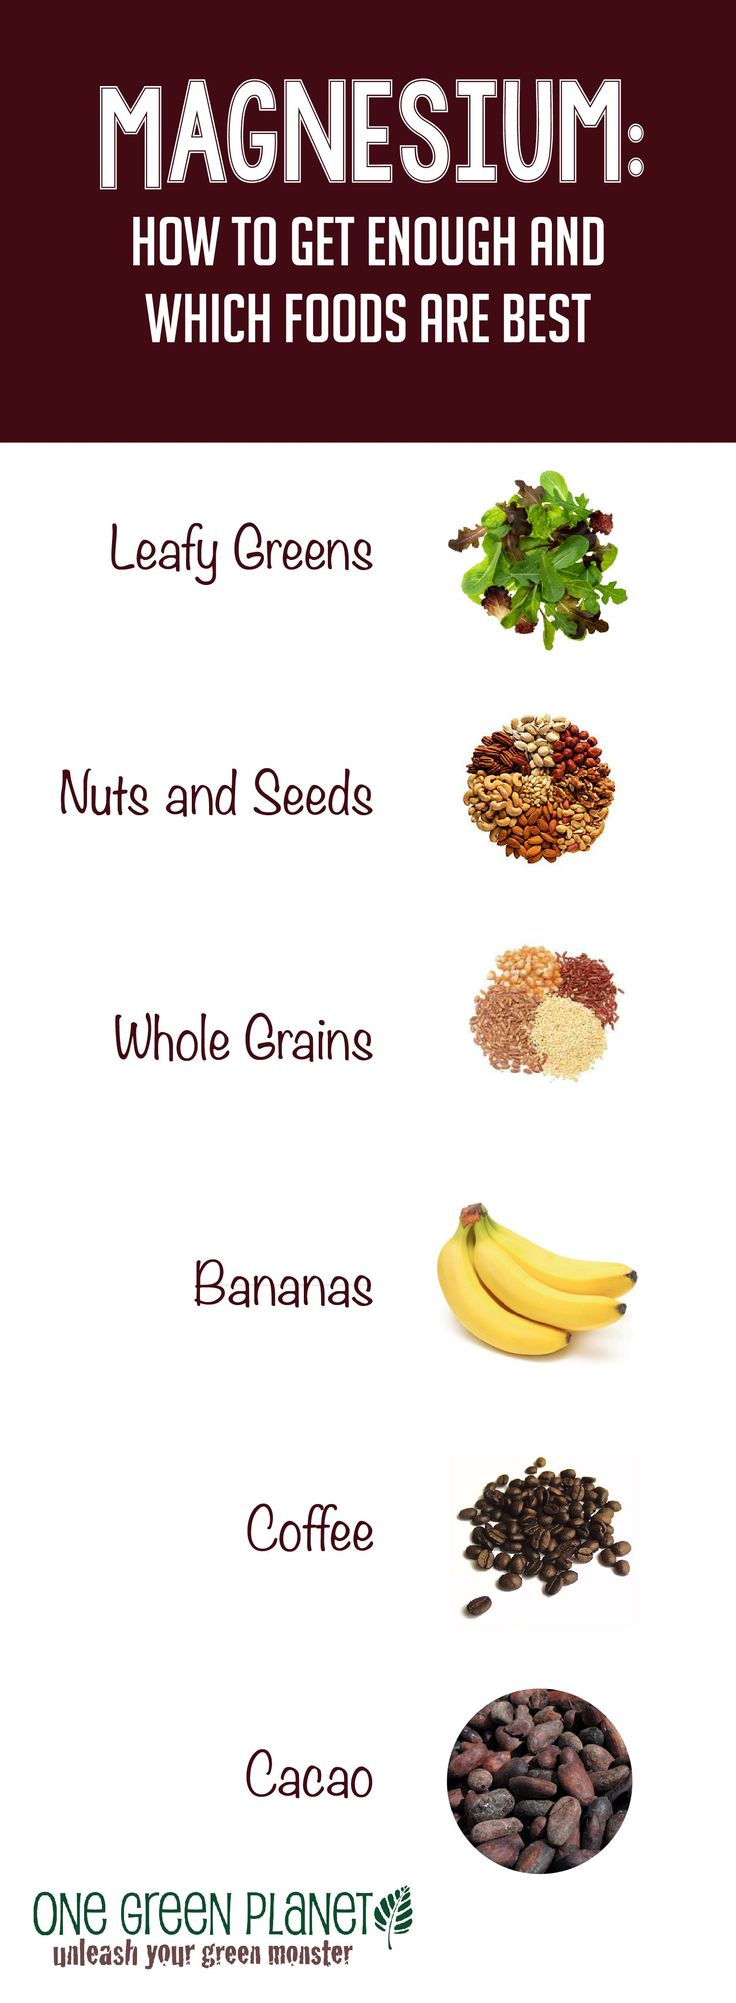 Foods with Magnesium - http://onegr.pl/1uEibKr #vegan #vegetarian #health